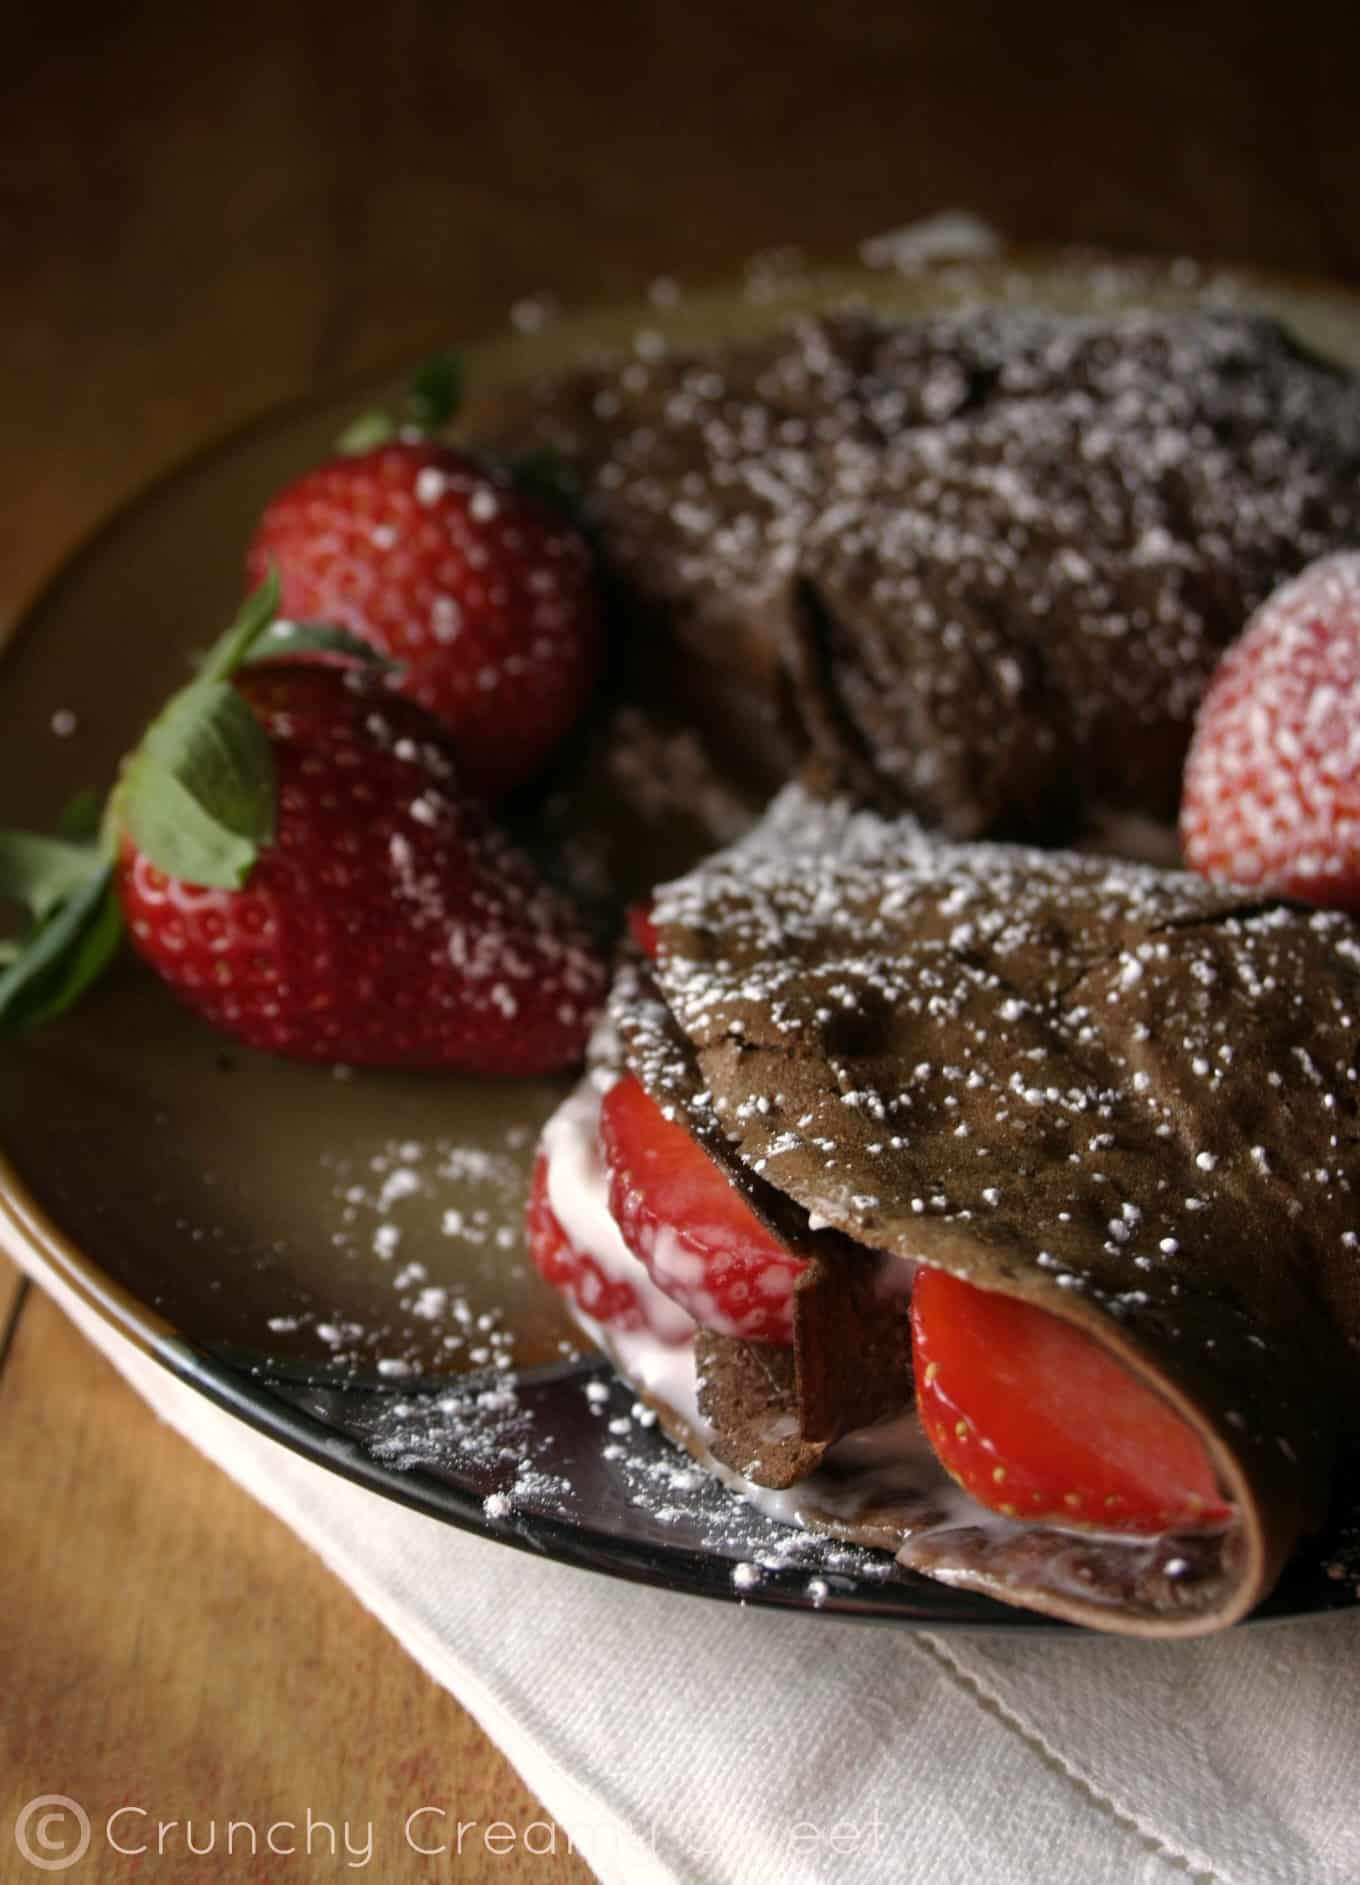 chocolate crepes 2 Chocolate Crepes with Strawberries and Cream Cheese